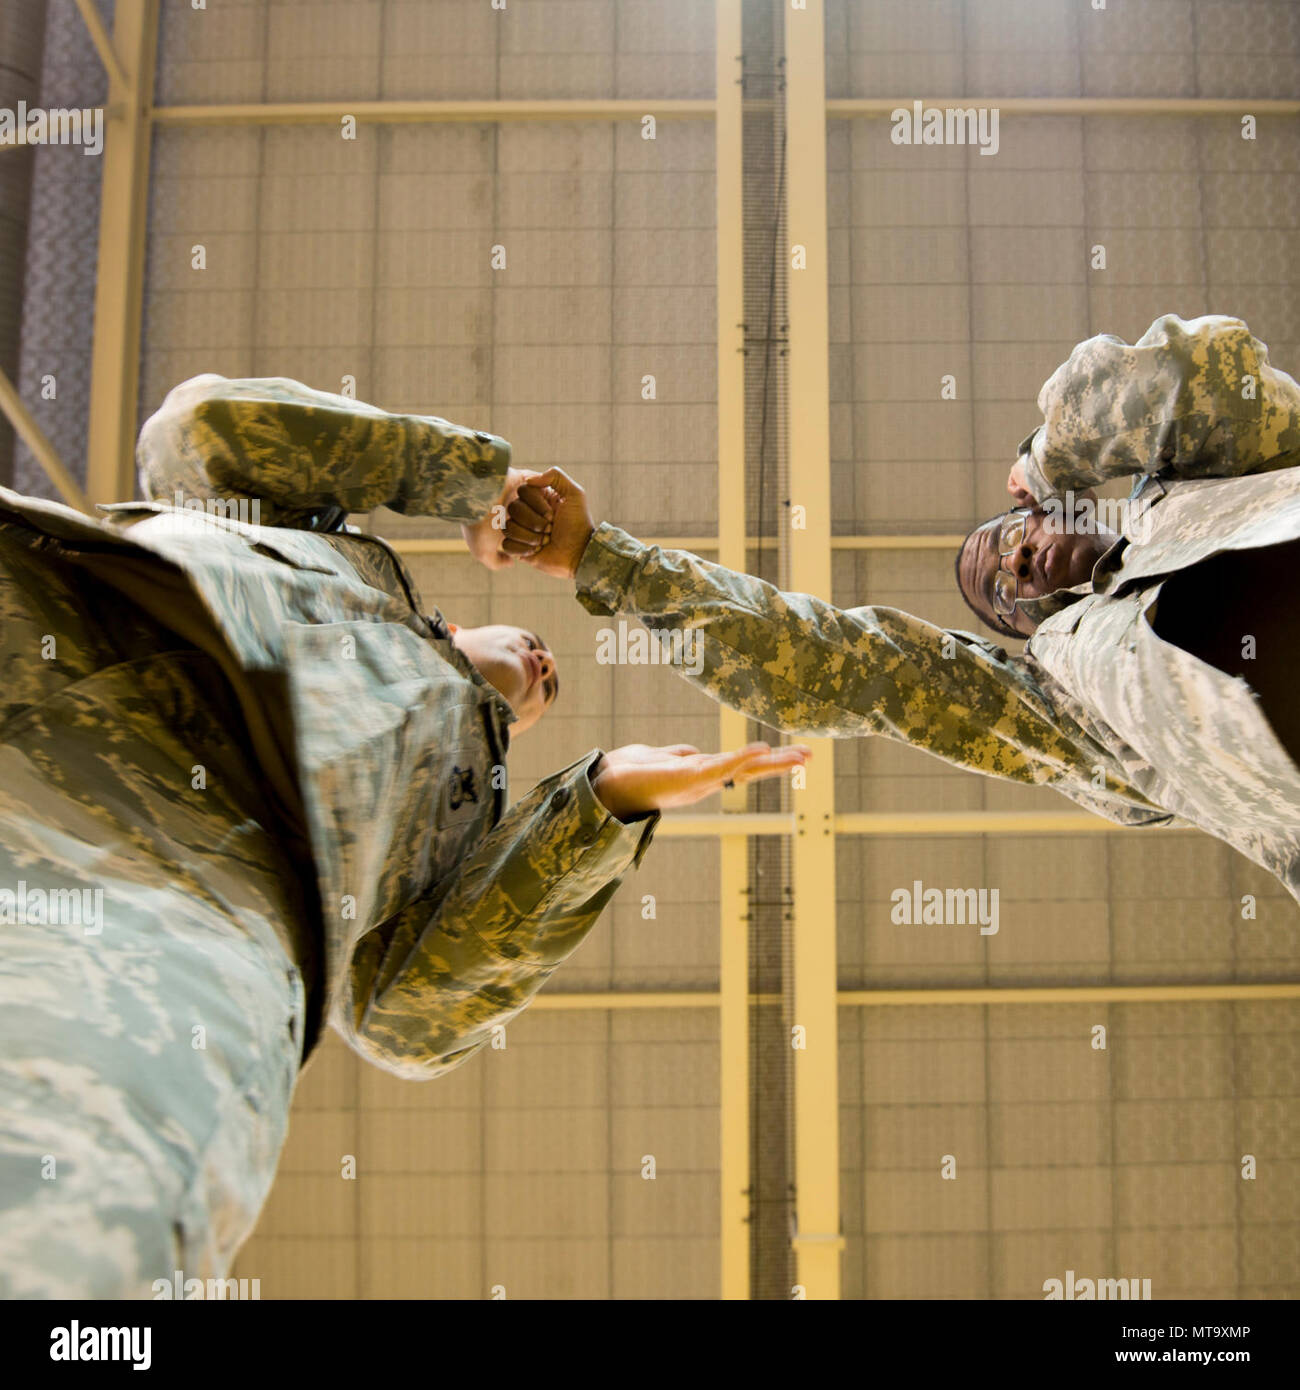 U.S. Air Force Staff Sgt. Mario Huerta, assigned to the SACEUR Security Detachment, describes the jab that U.S. Army Terrance Simmons, with the Northern Law Center, 21st Theater Sustainment Command throws, for a Joint Tactical Combatives Course, in Chièvres, Belgium, March 09, 2018. - Stock Image